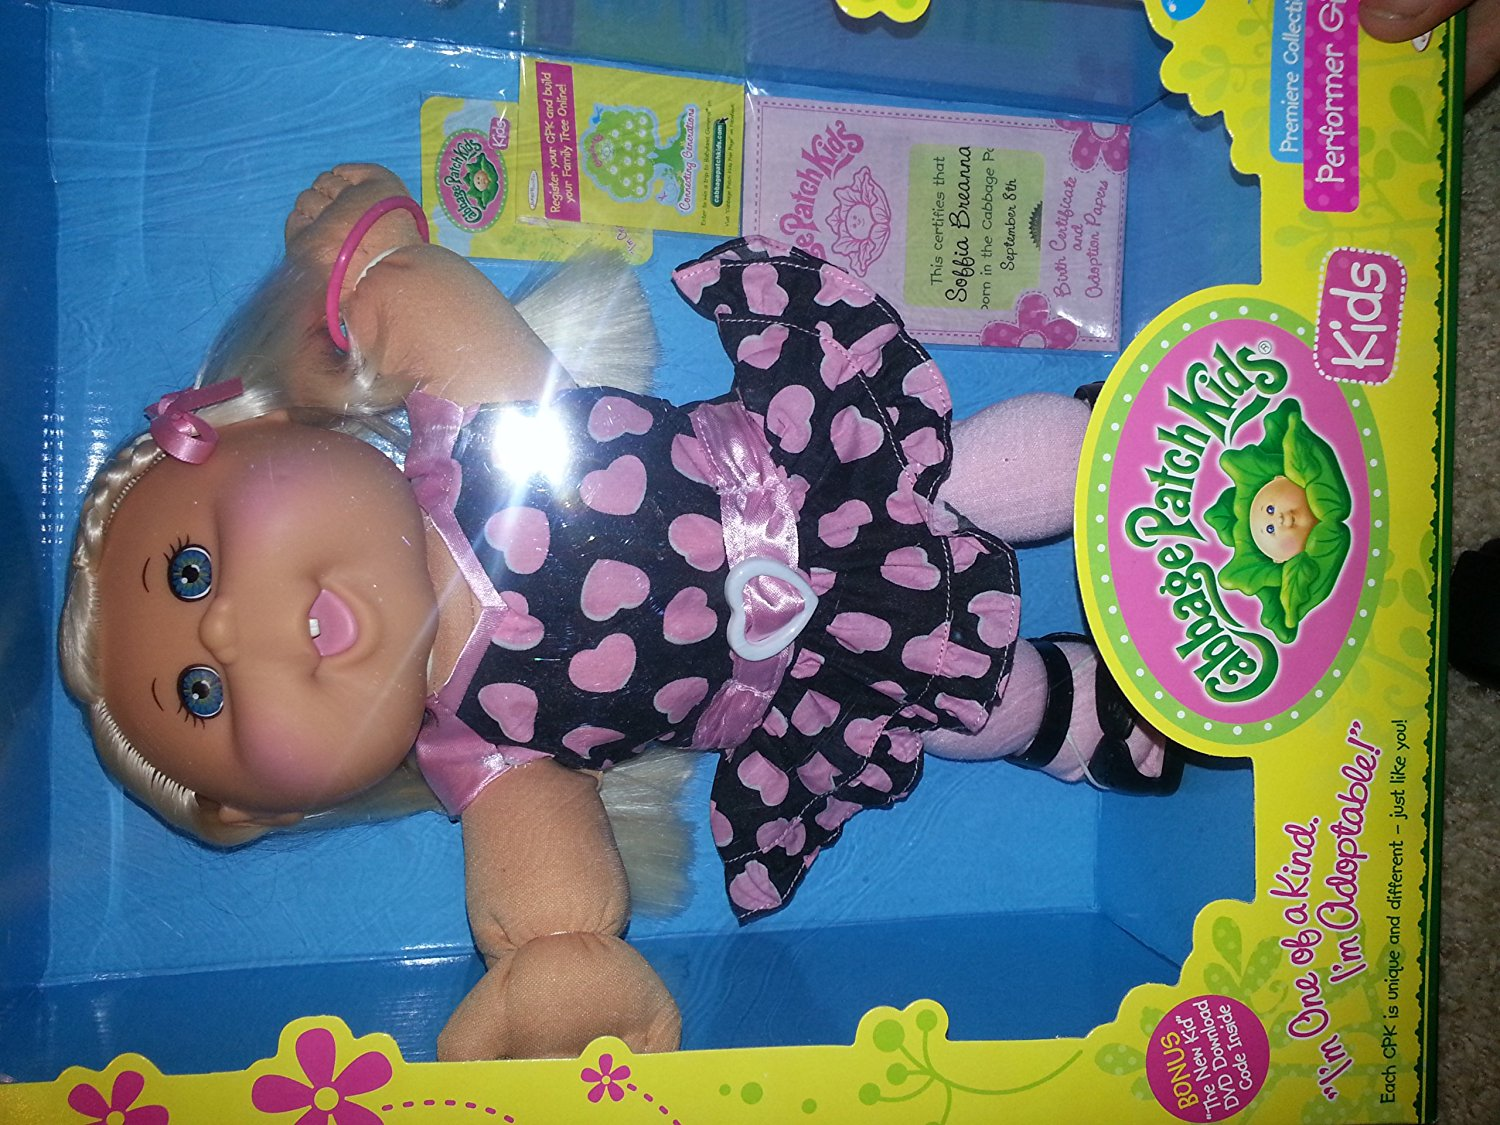 Cabbage Patch Kids Premium Collection Caucasian Blonde Performer Girl